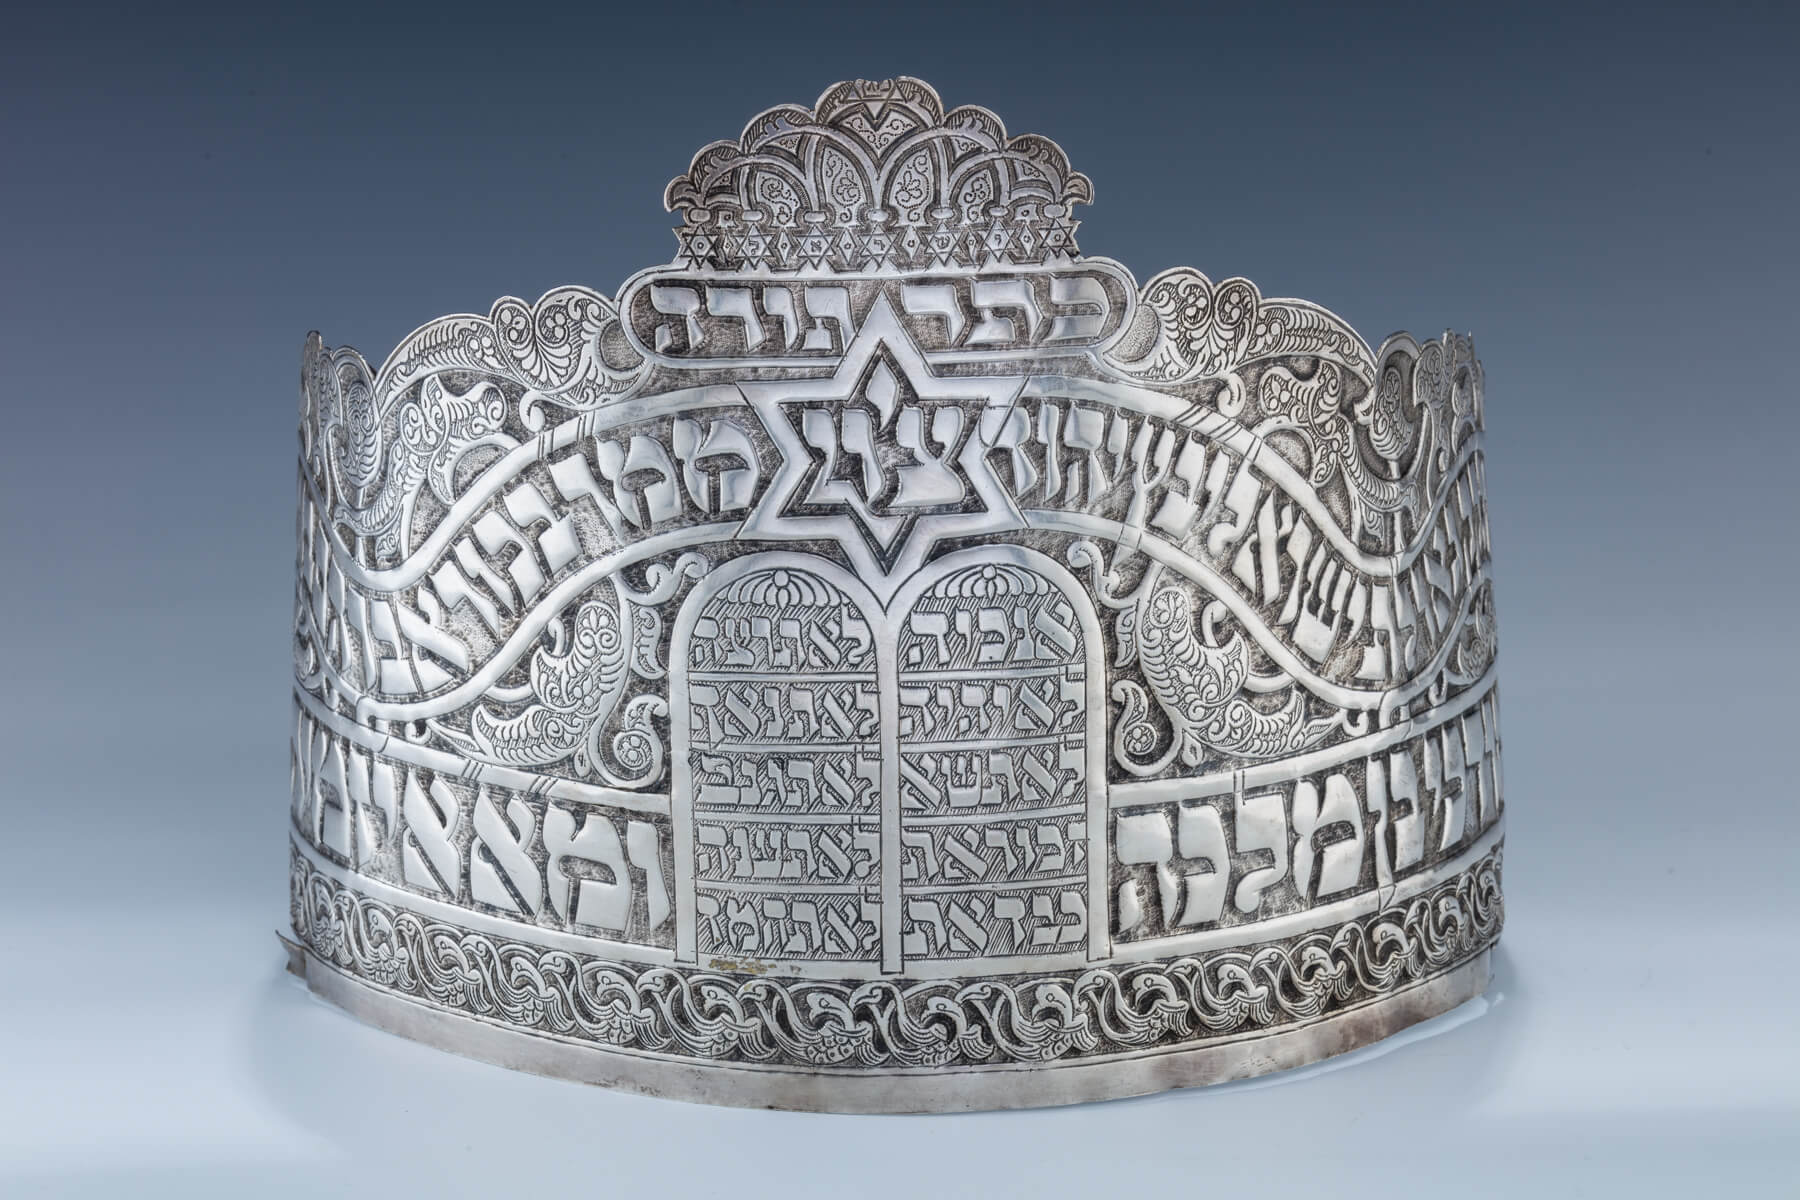 26. A Large Silver Torah Crown By Emunath Mizrach Workshop